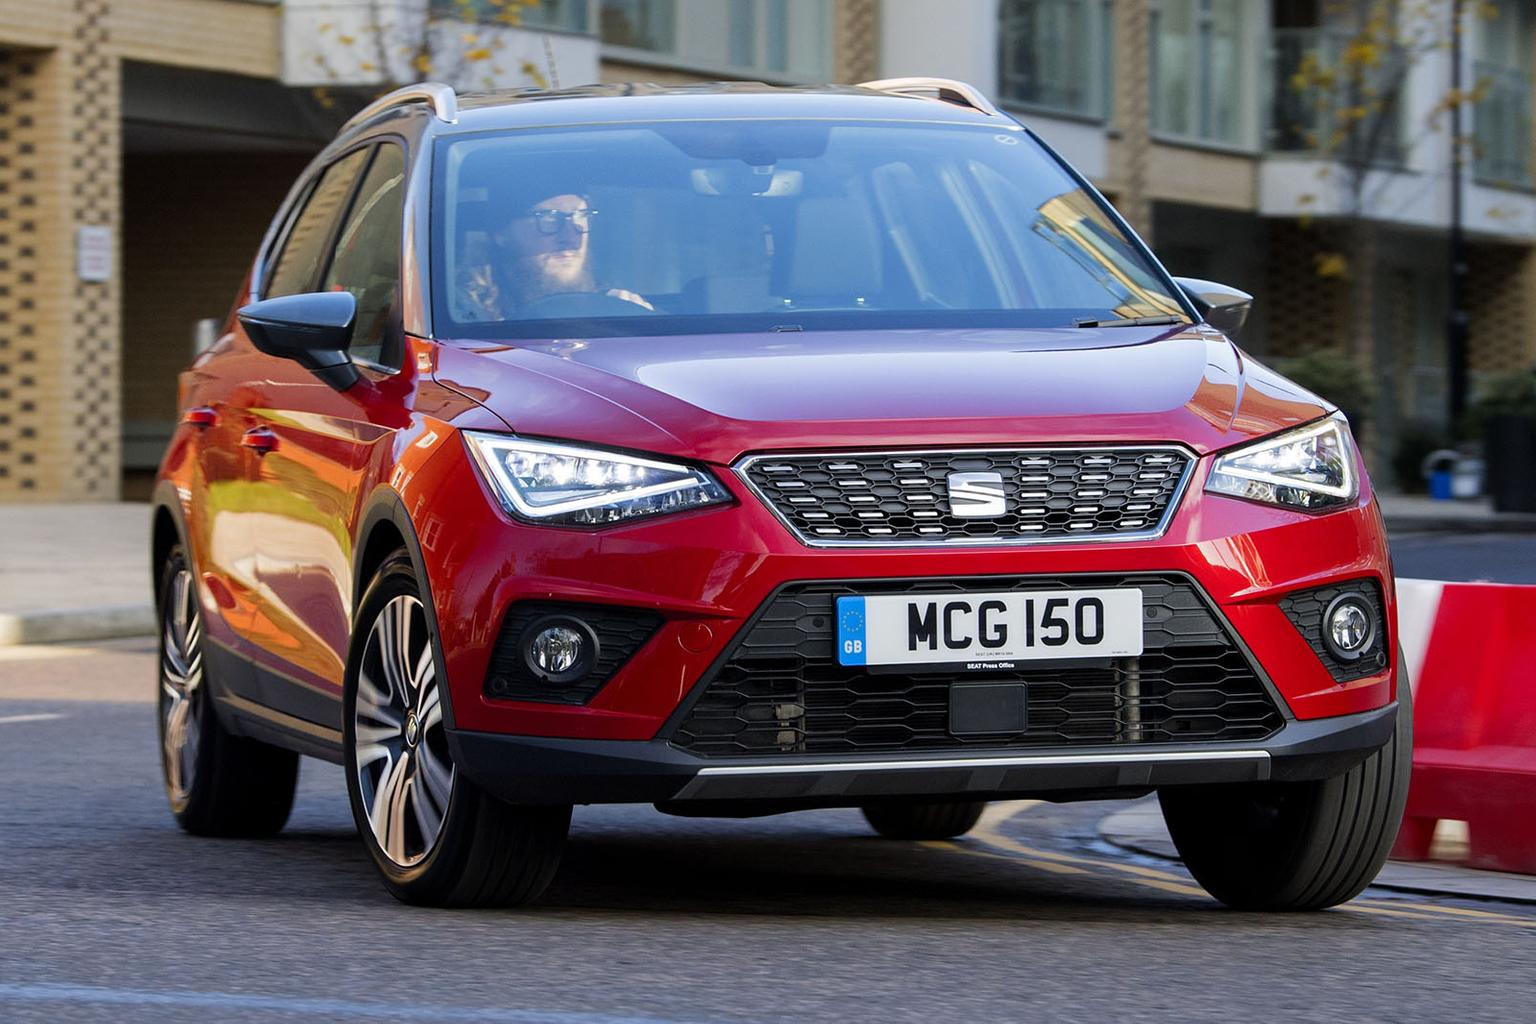 2018 Seat Arona 1.5 TSI Evo 150 review - price, specs and release date